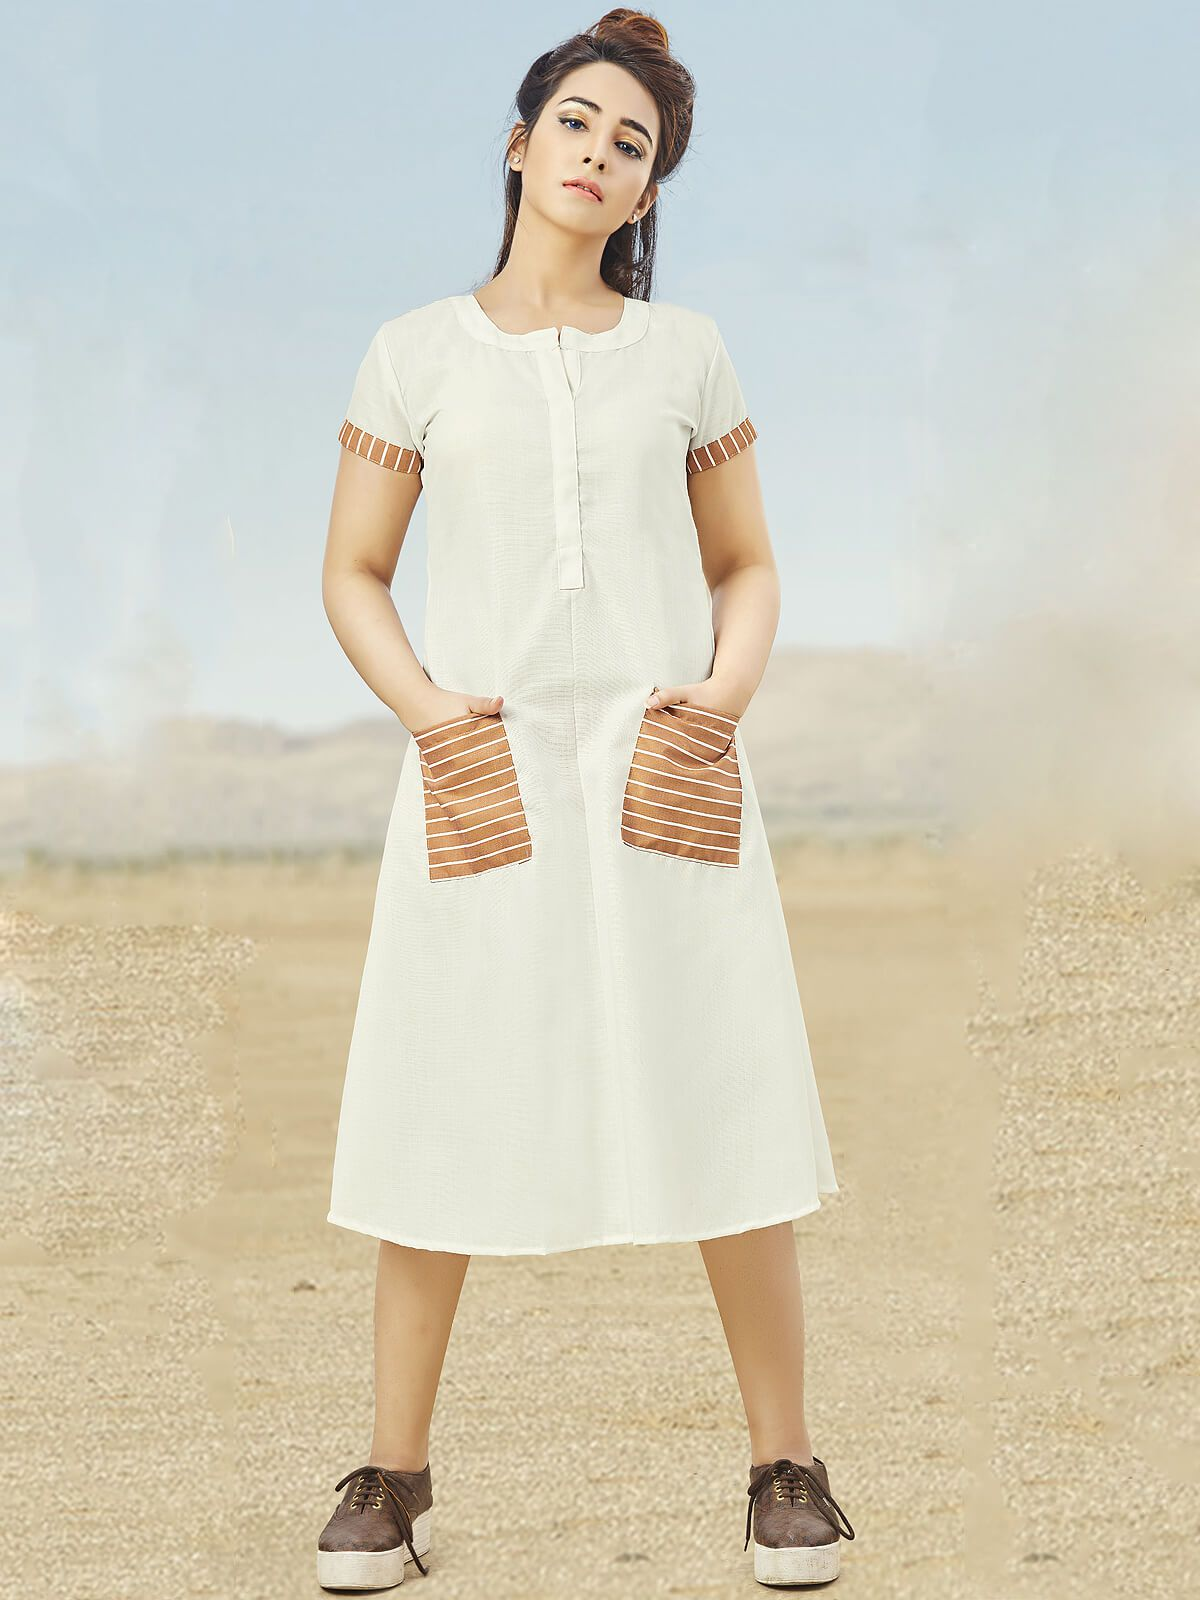 90e6342e85 Funky Cotton Kurti To Sizzle Your Summer Look | Blogs And Articles ...